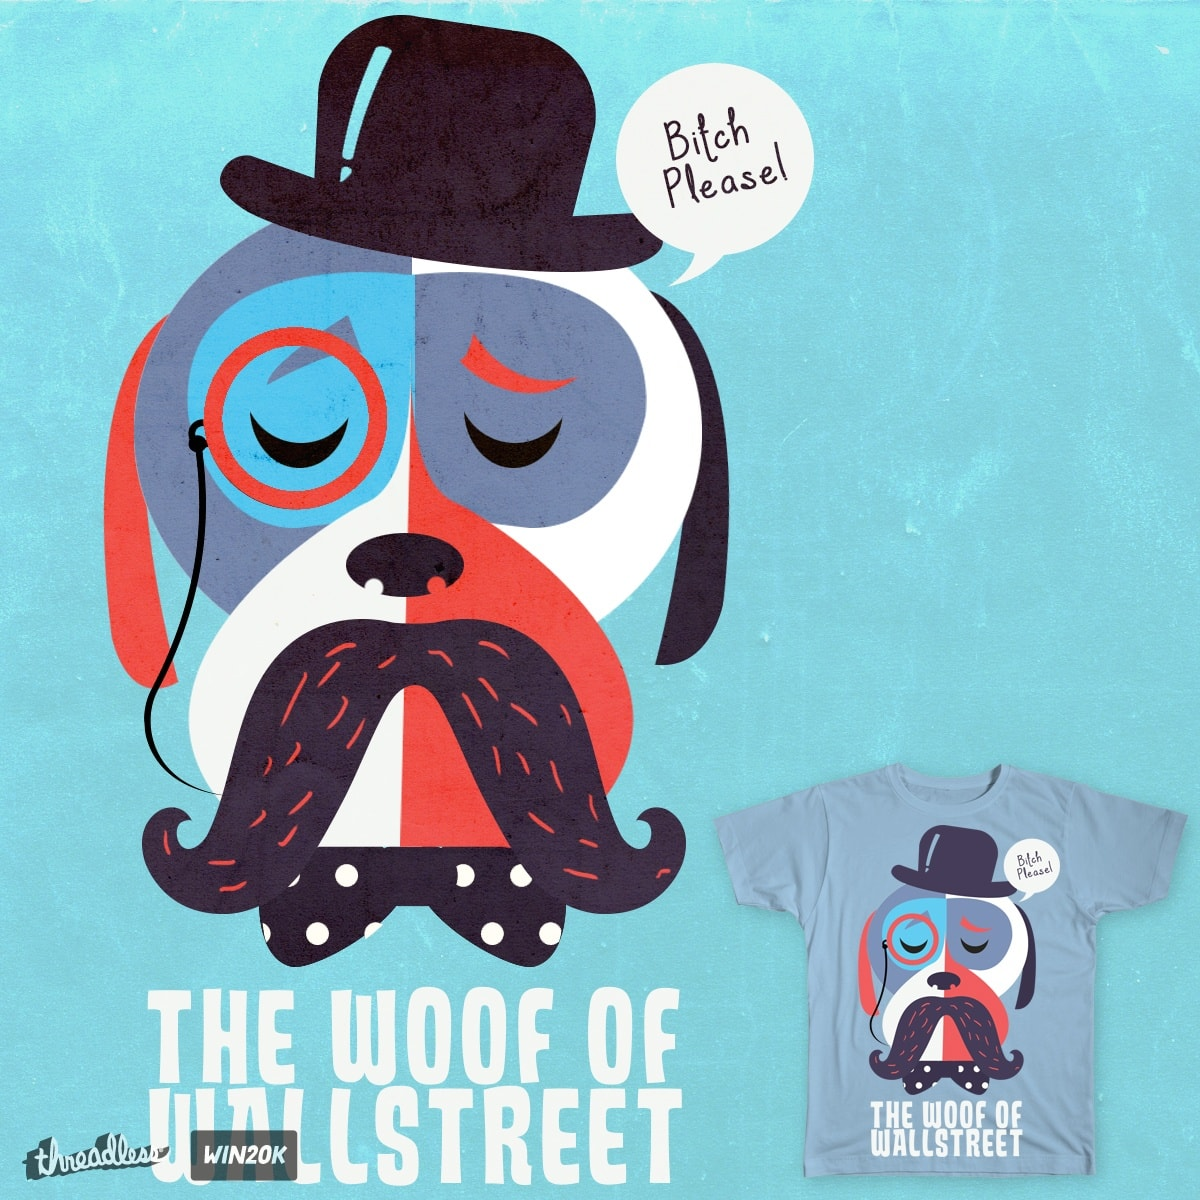 The Woof of Wallstreet by tcja on Threadless